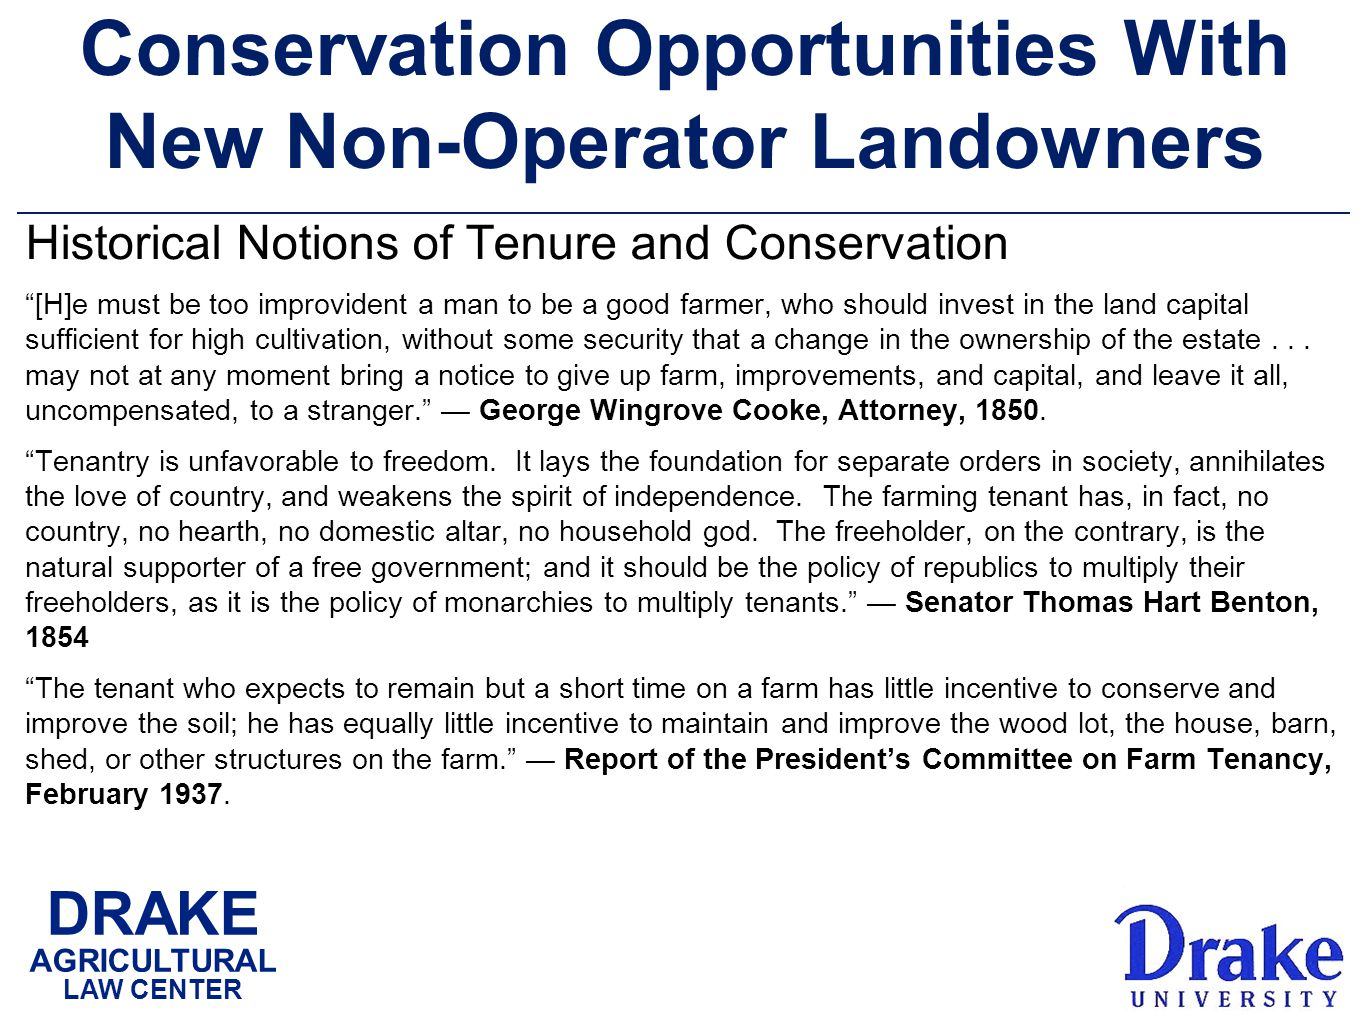 DRAKE AGRICULTURAL LAW CENTER Conservation Opportunities With New Non-Operator Landowners Historical Notions of Tenure and Conservation [H]e must be too improvident a man to be a good farmer, who should invest in the land capital sufficient for high cultivation, without some security that a change in the ownership of the estate...